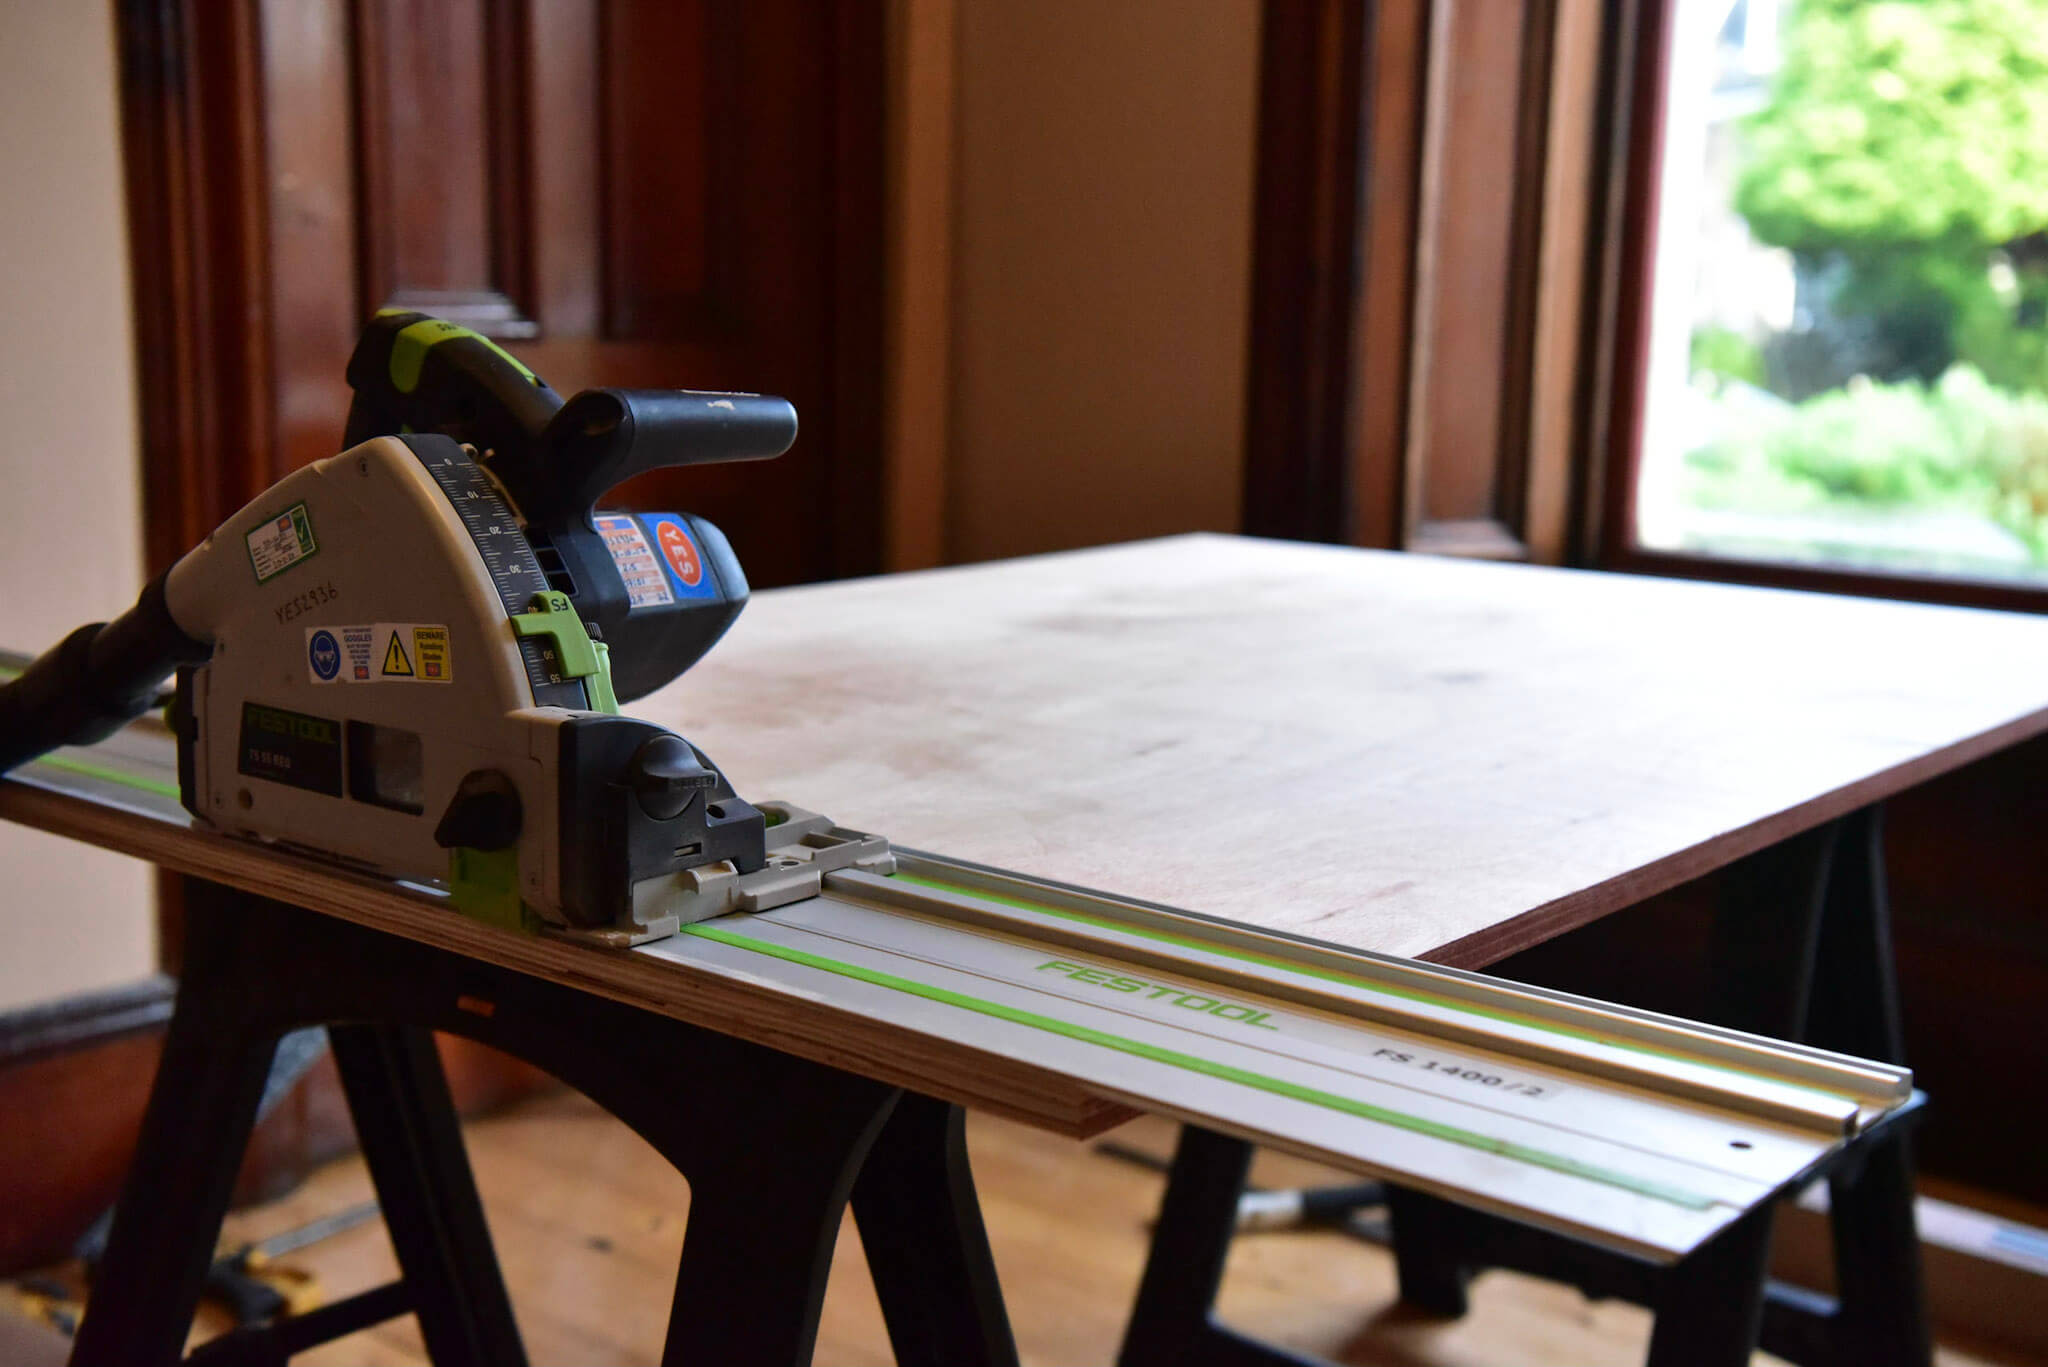 A plunge saw was used to create straight square cuts of the plywood.